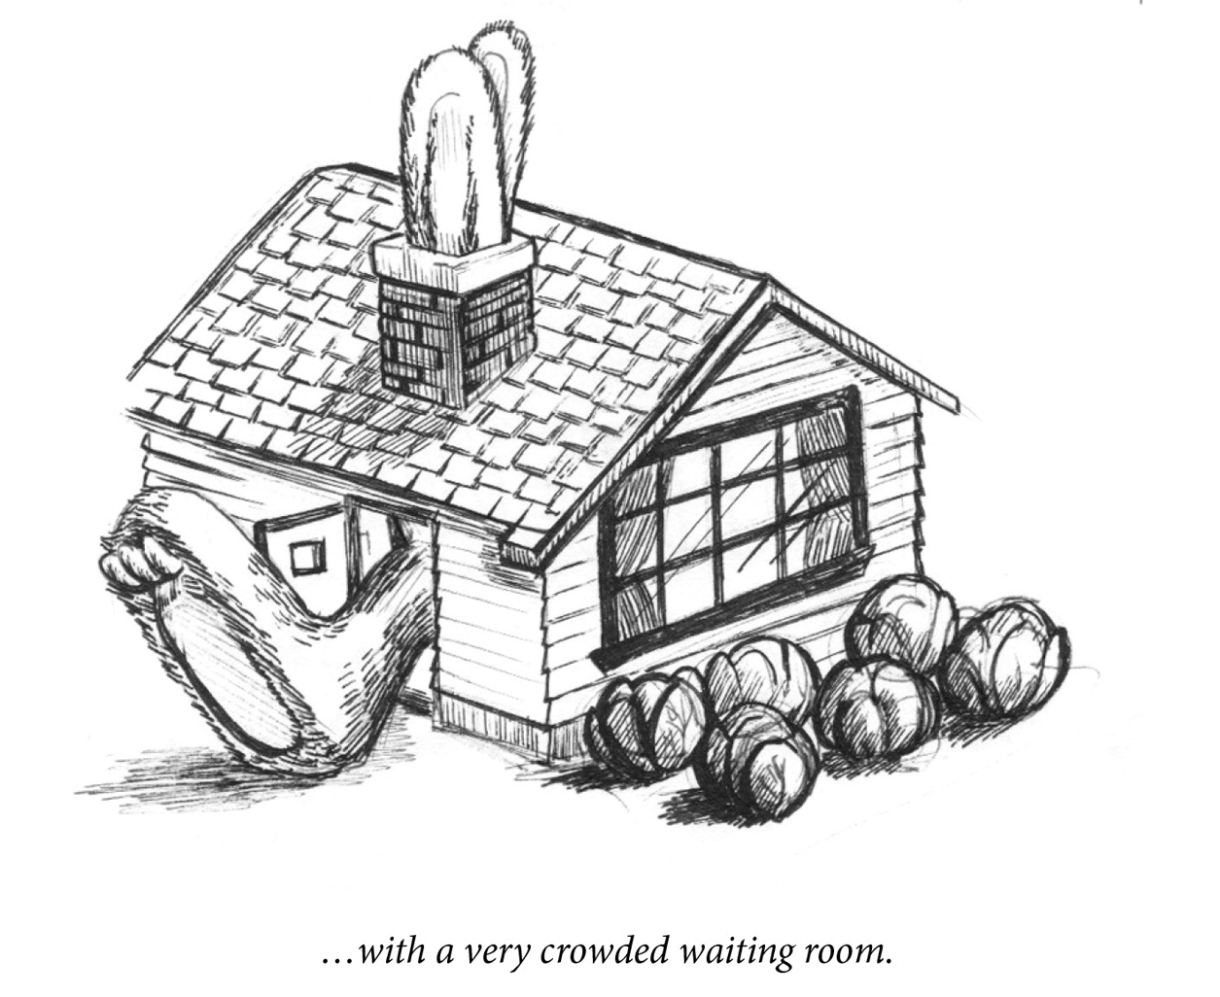 """Image description: An idyllic cottage has a very large bunny inside, with two ears sticking out the chimney and a large foot out the front door. Caption: """"…with a very crowded waiting room."""""""